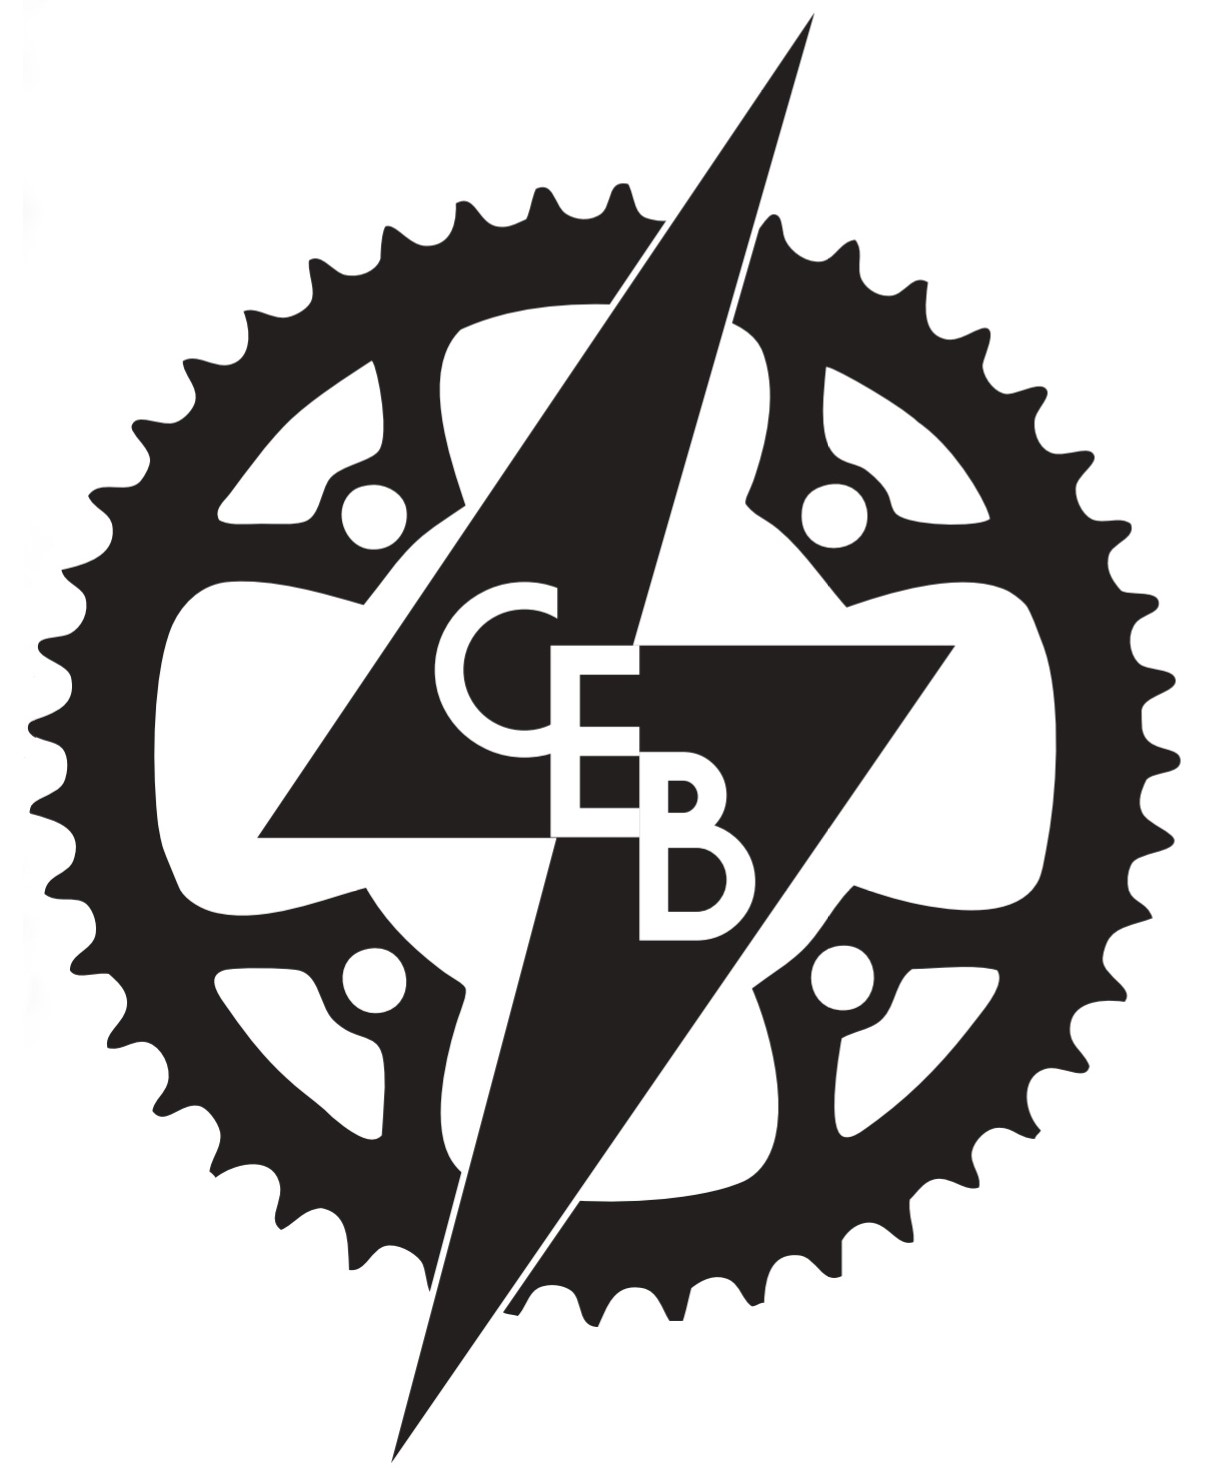 CEB LOGO NO TEXT.JPG